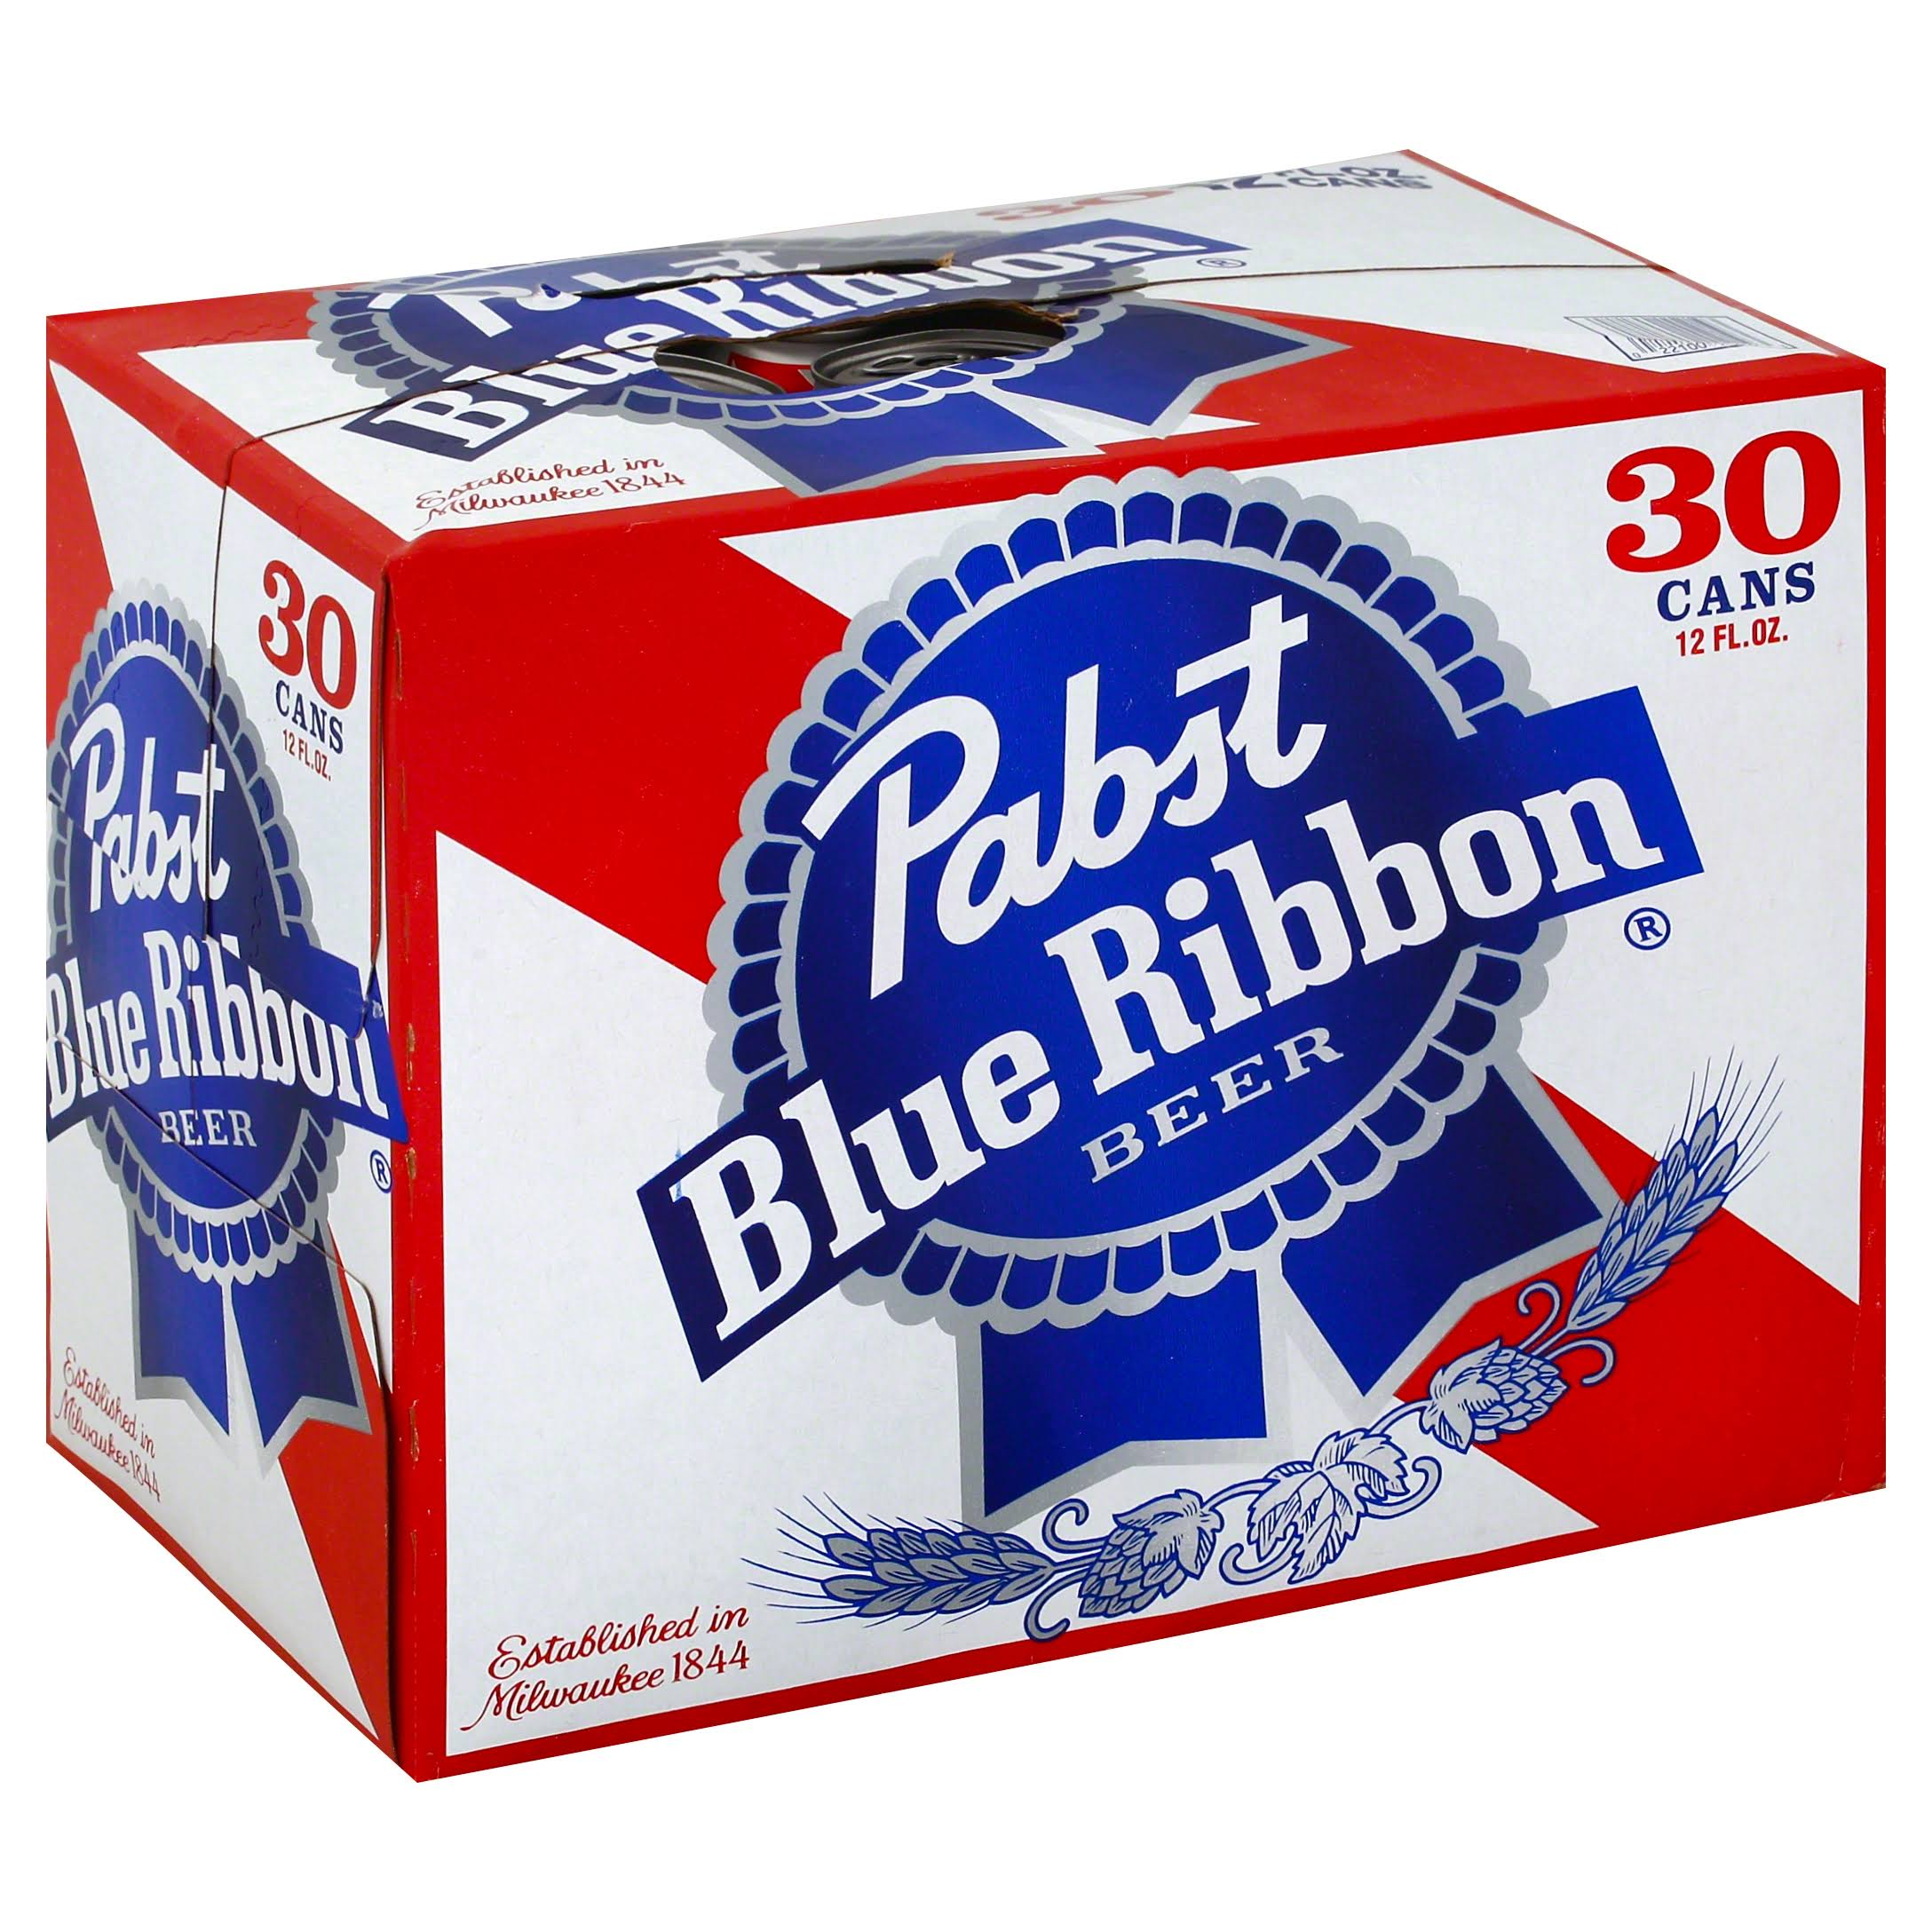 Pabst Blue Ribbon Beer Cans - 12oz, 30pk